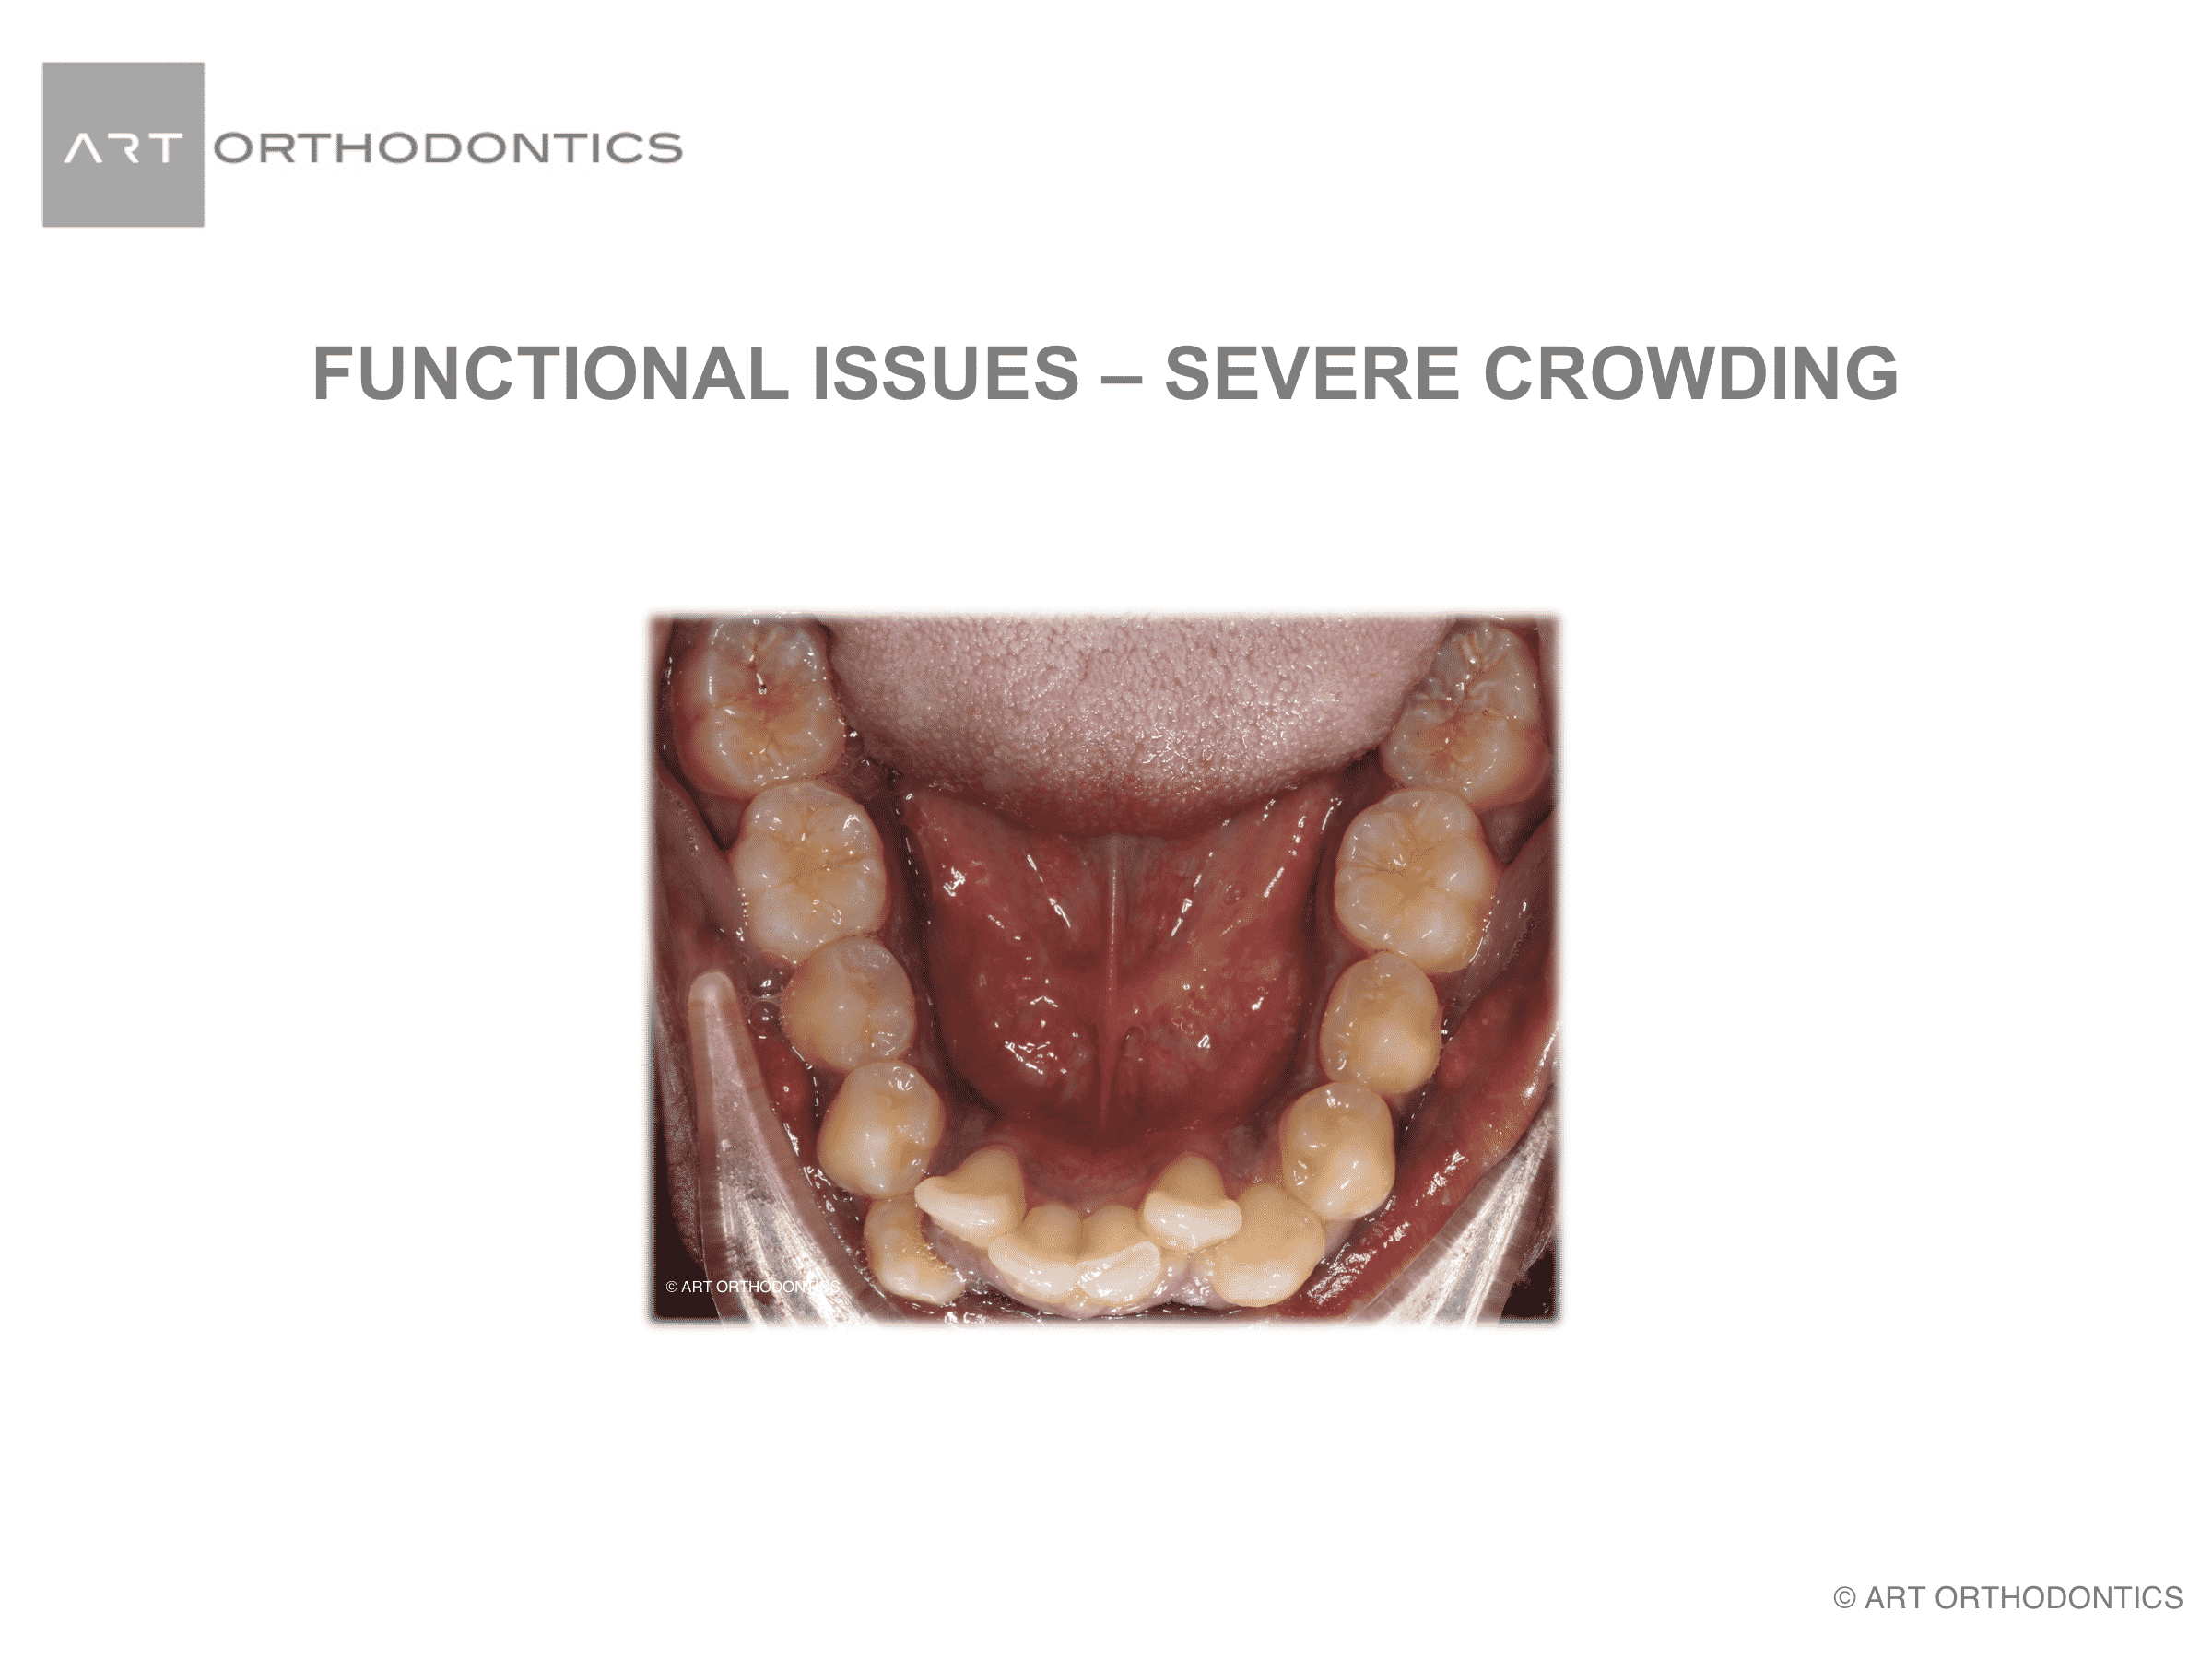 Lower jaw with severe crowding